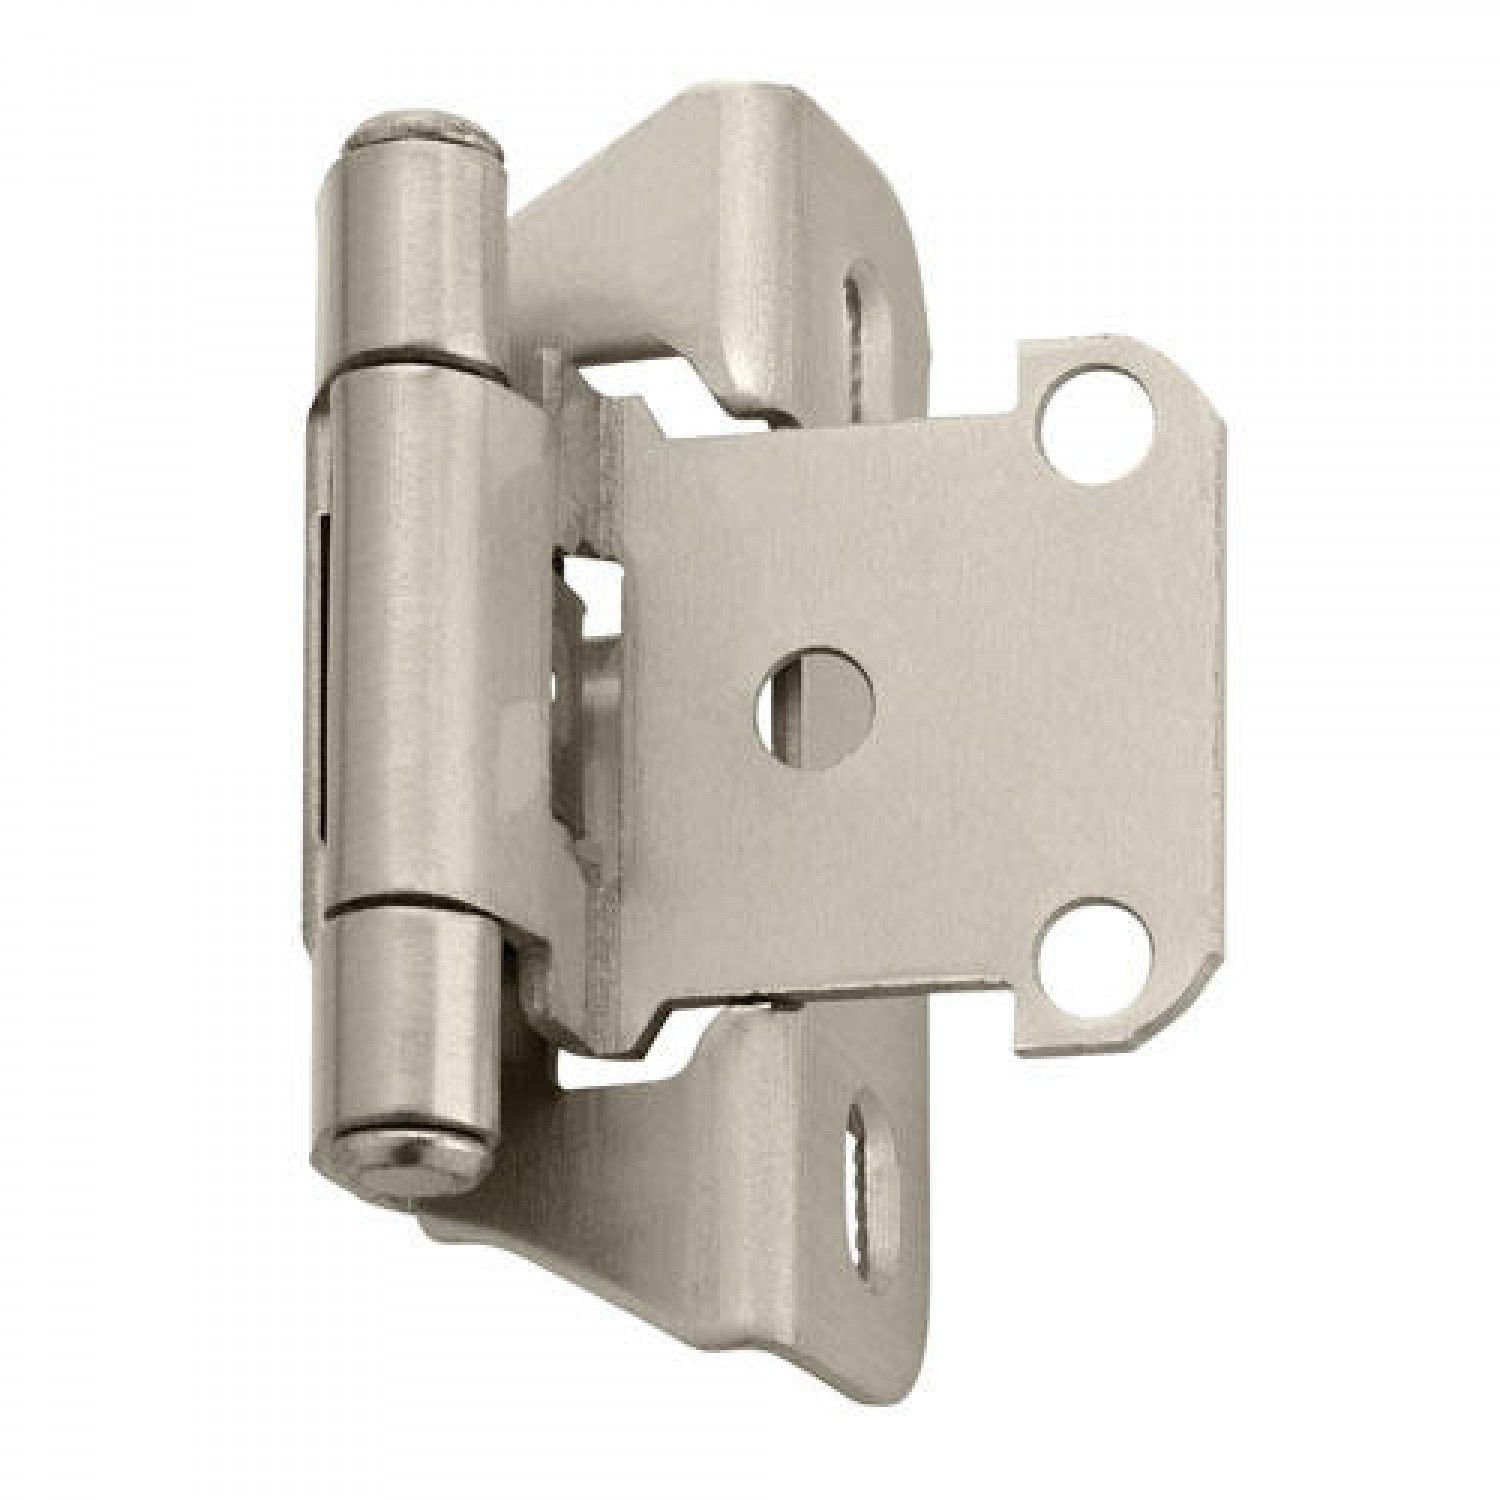 Self Closing Partial Wrap Cabinet Hinge 1 4 Overlay Set Of 2 Overlay Hinges Cabinet Hardware Hinges Amerock